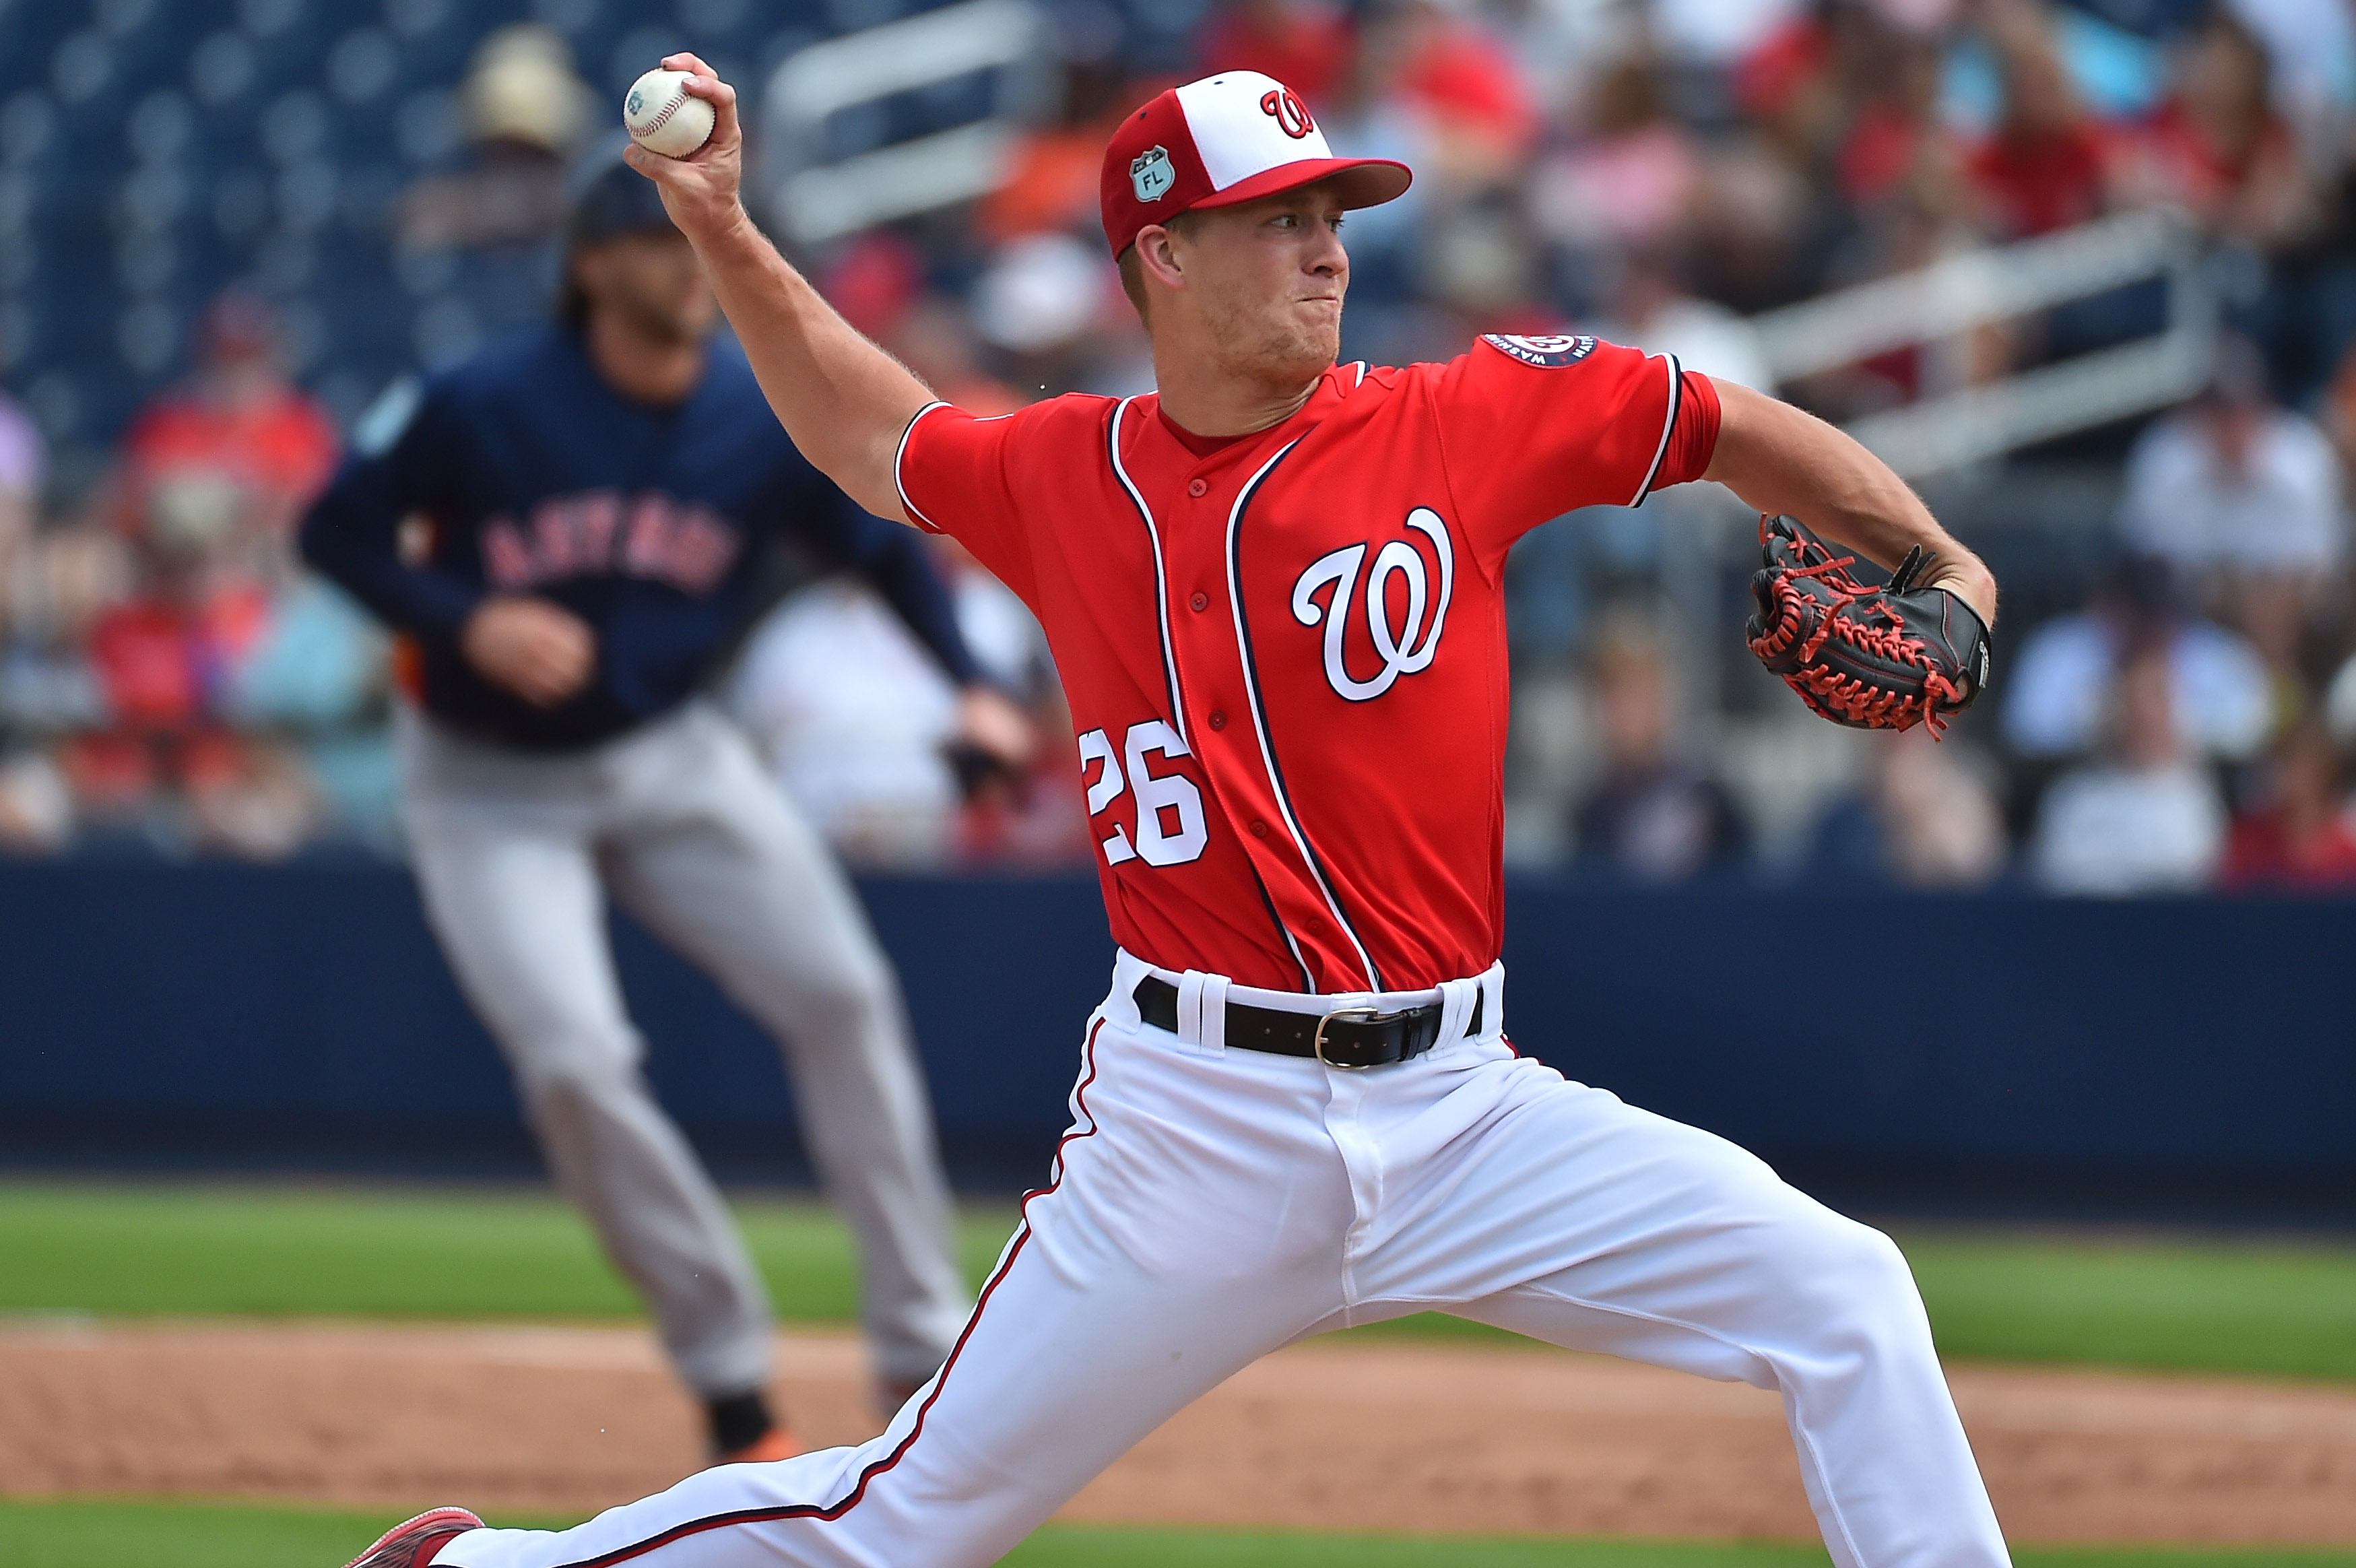 9907406-mlb-spring-training-houston-astros-at-washington-nationals